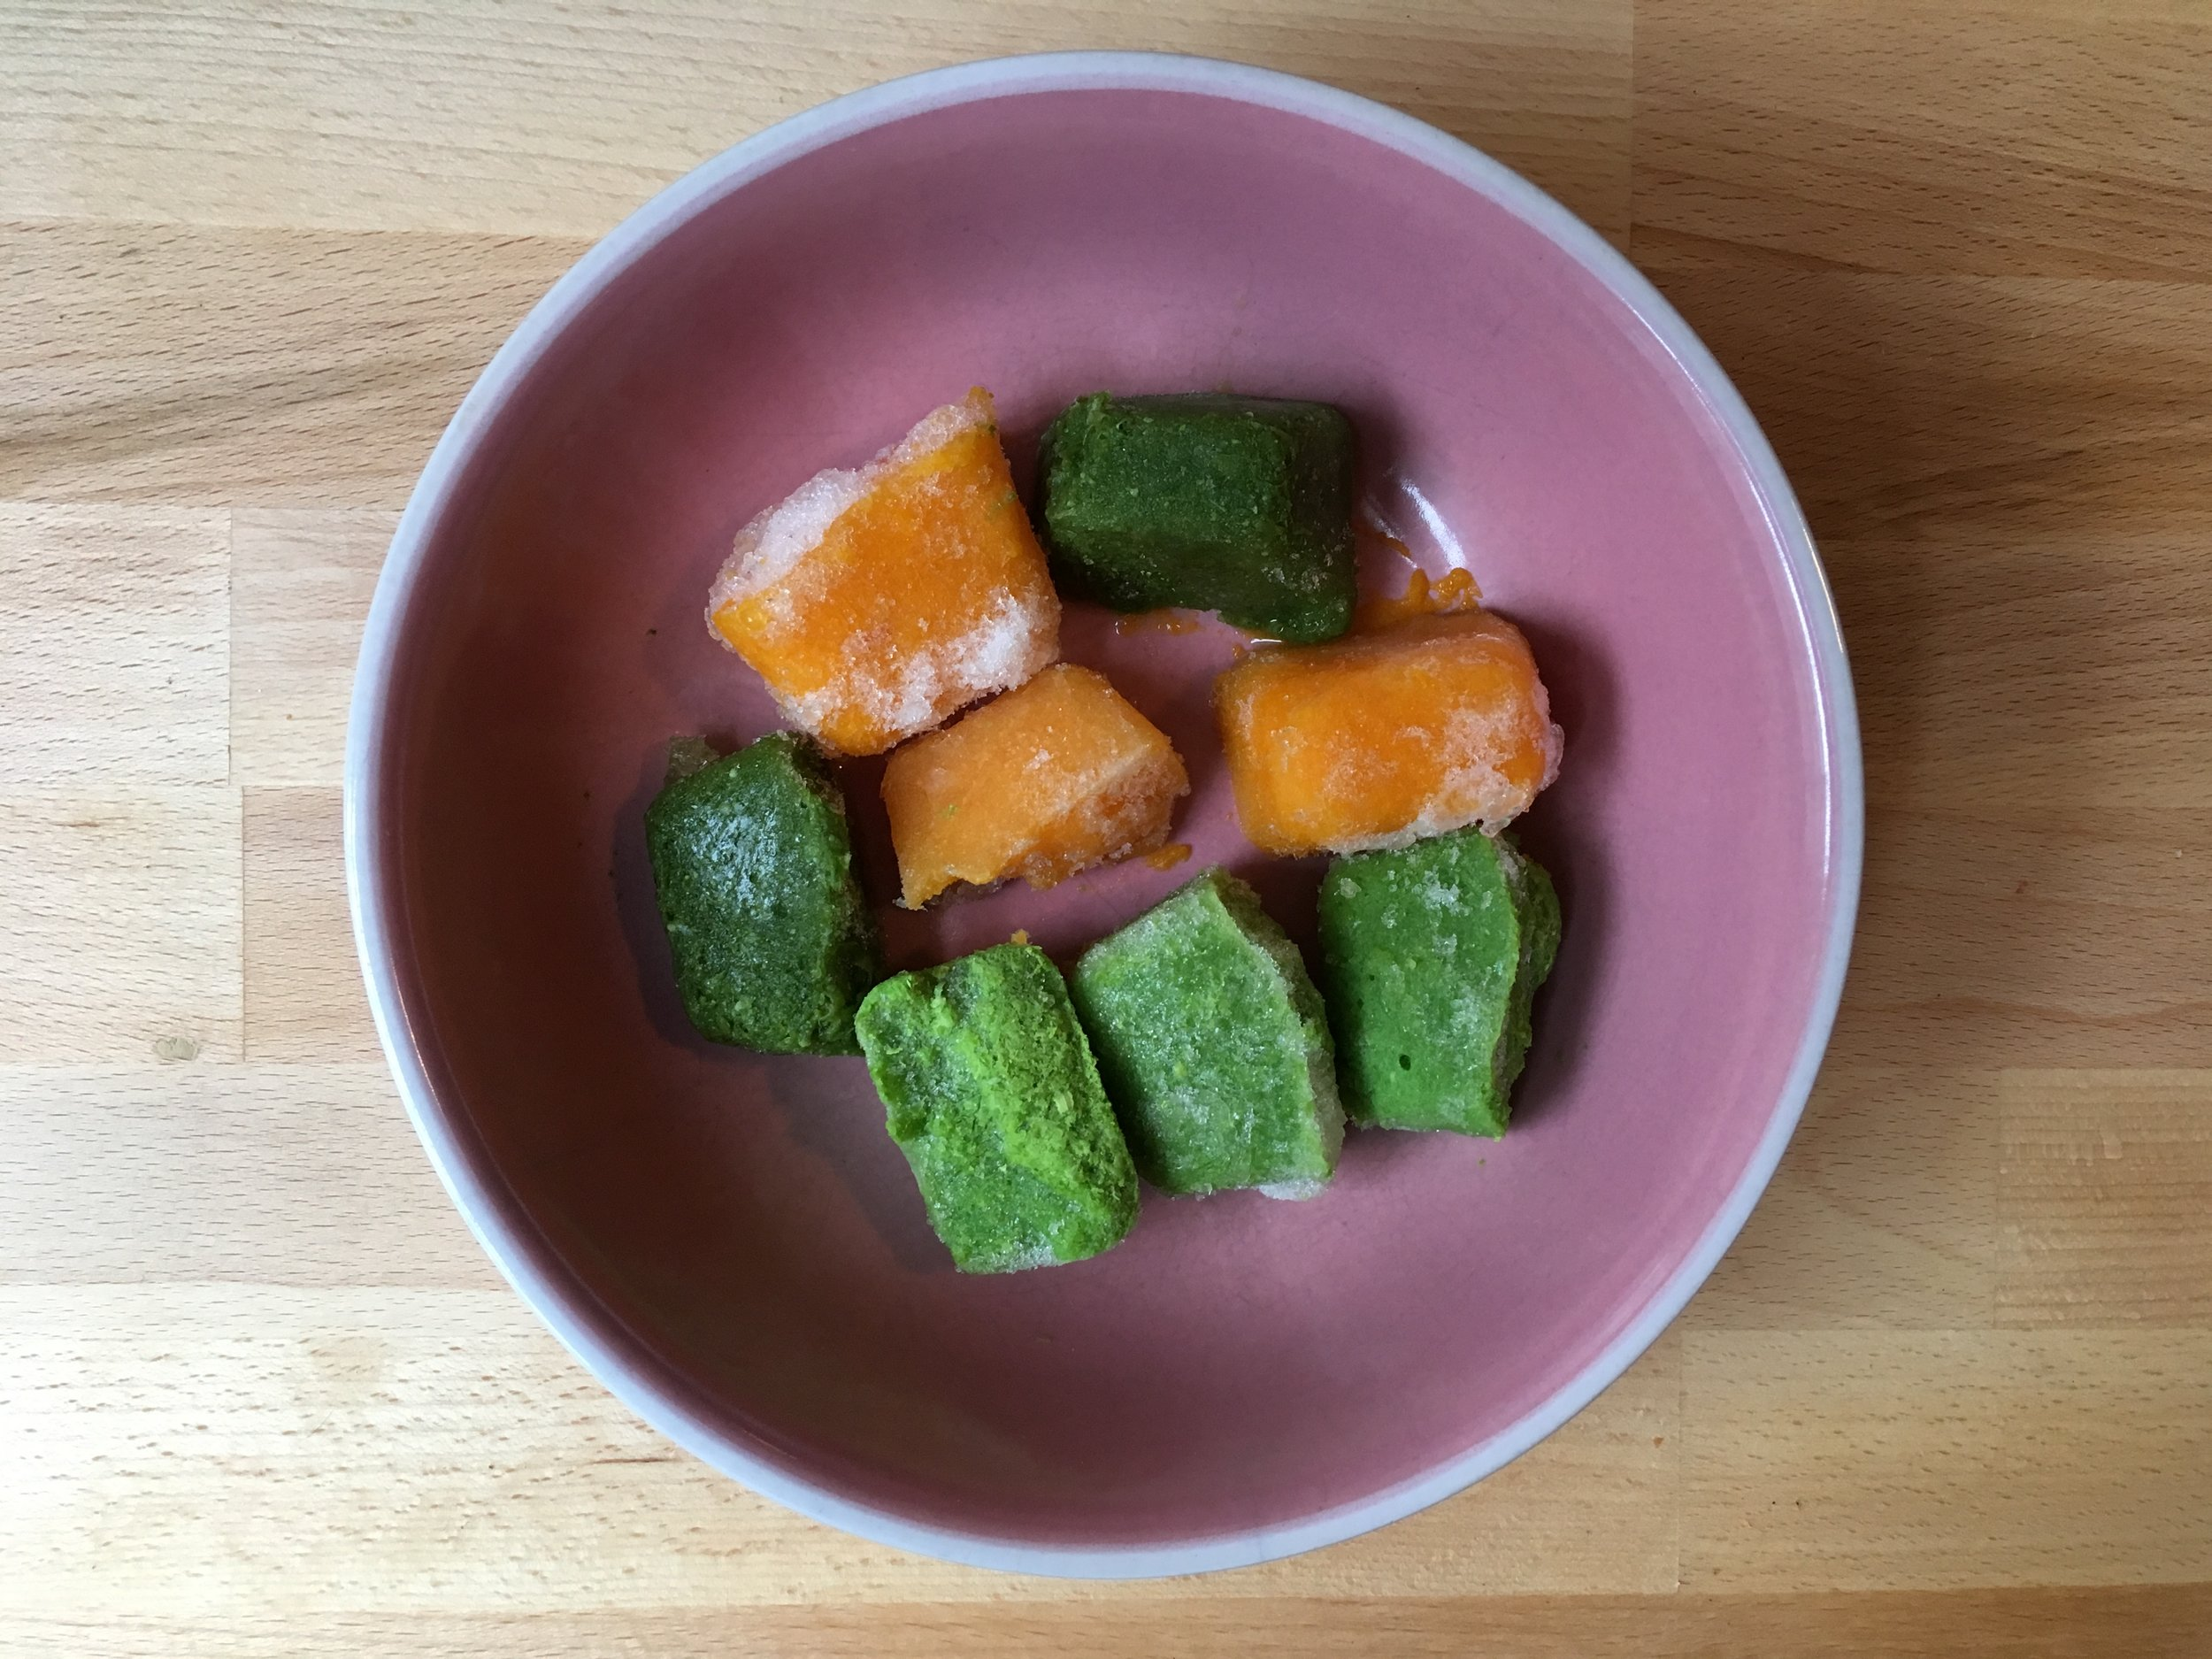 Purée ice cubes of peas, butternut squash, and green beans